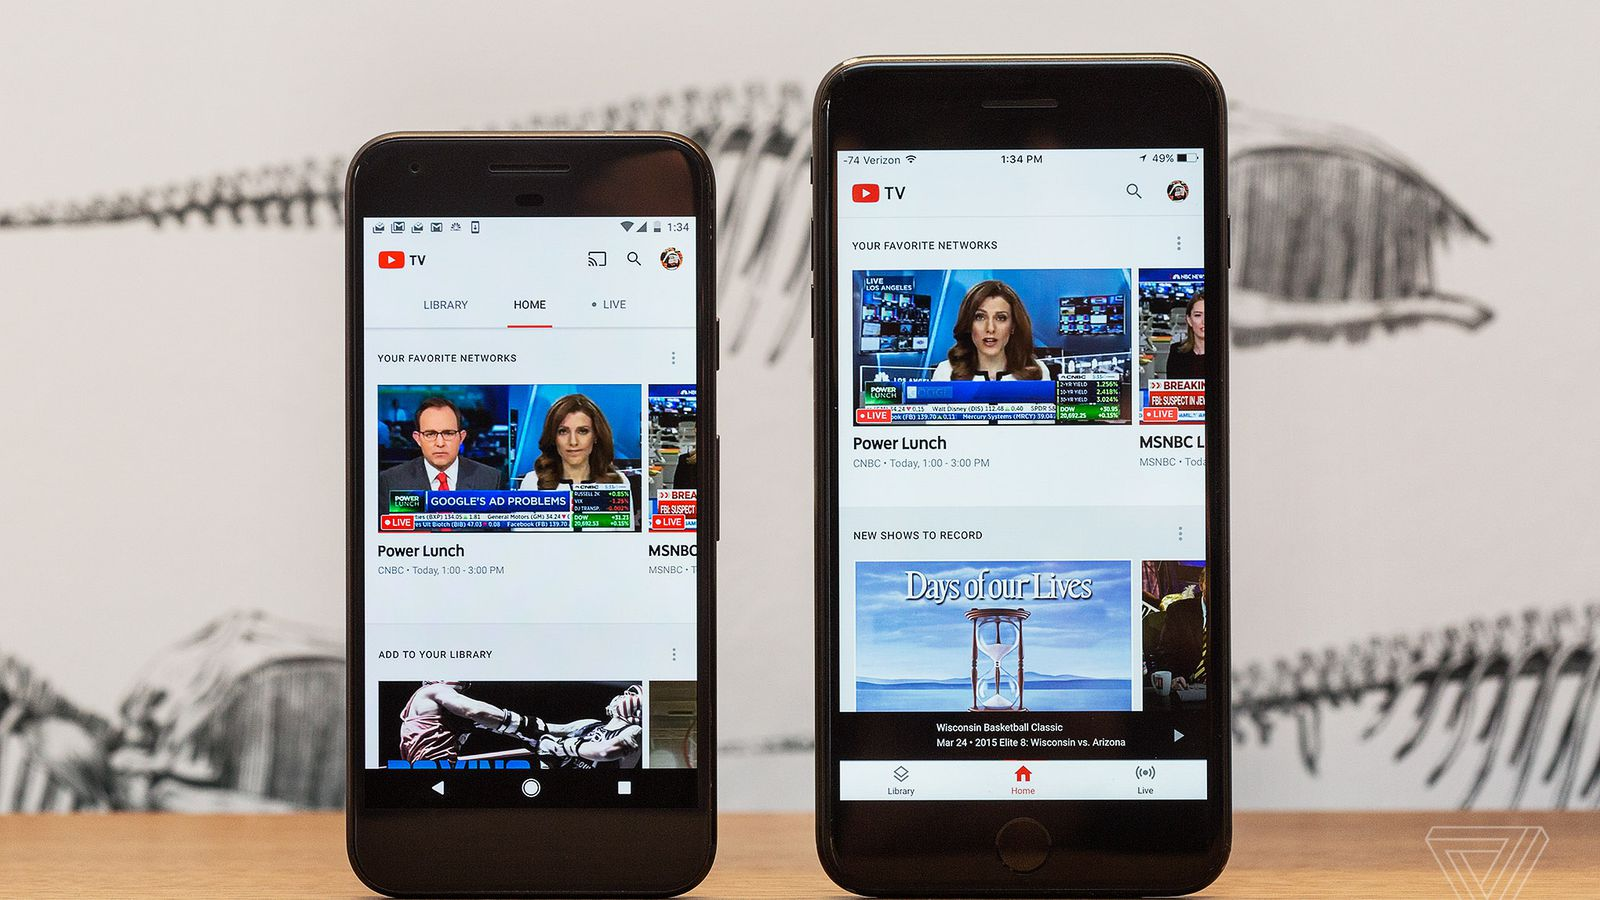 10 important things to know before signing up for YouTube TV